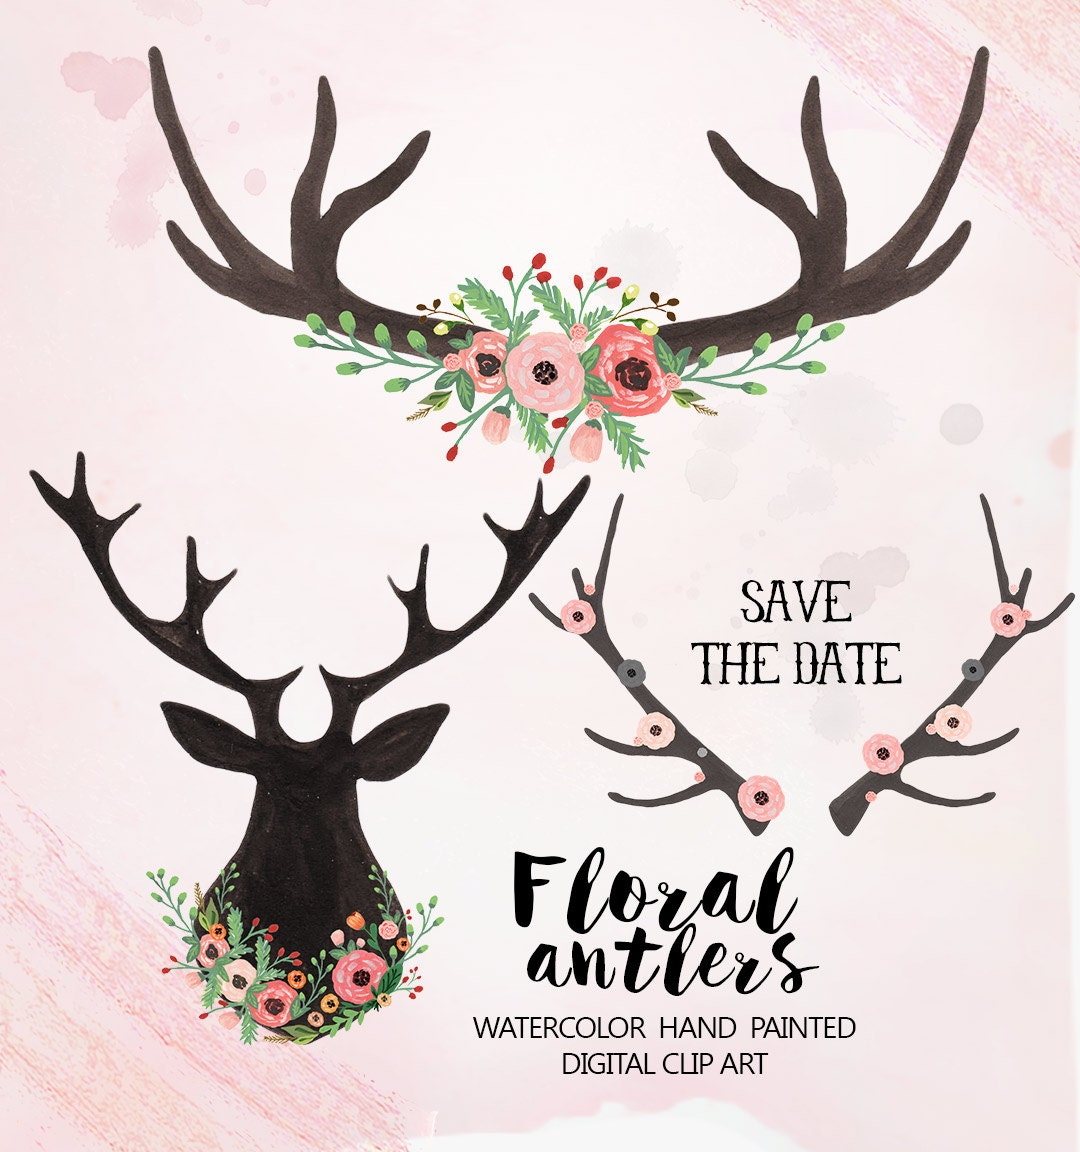 Watercolor Floral antlers Clipart Wedding floral Clip art